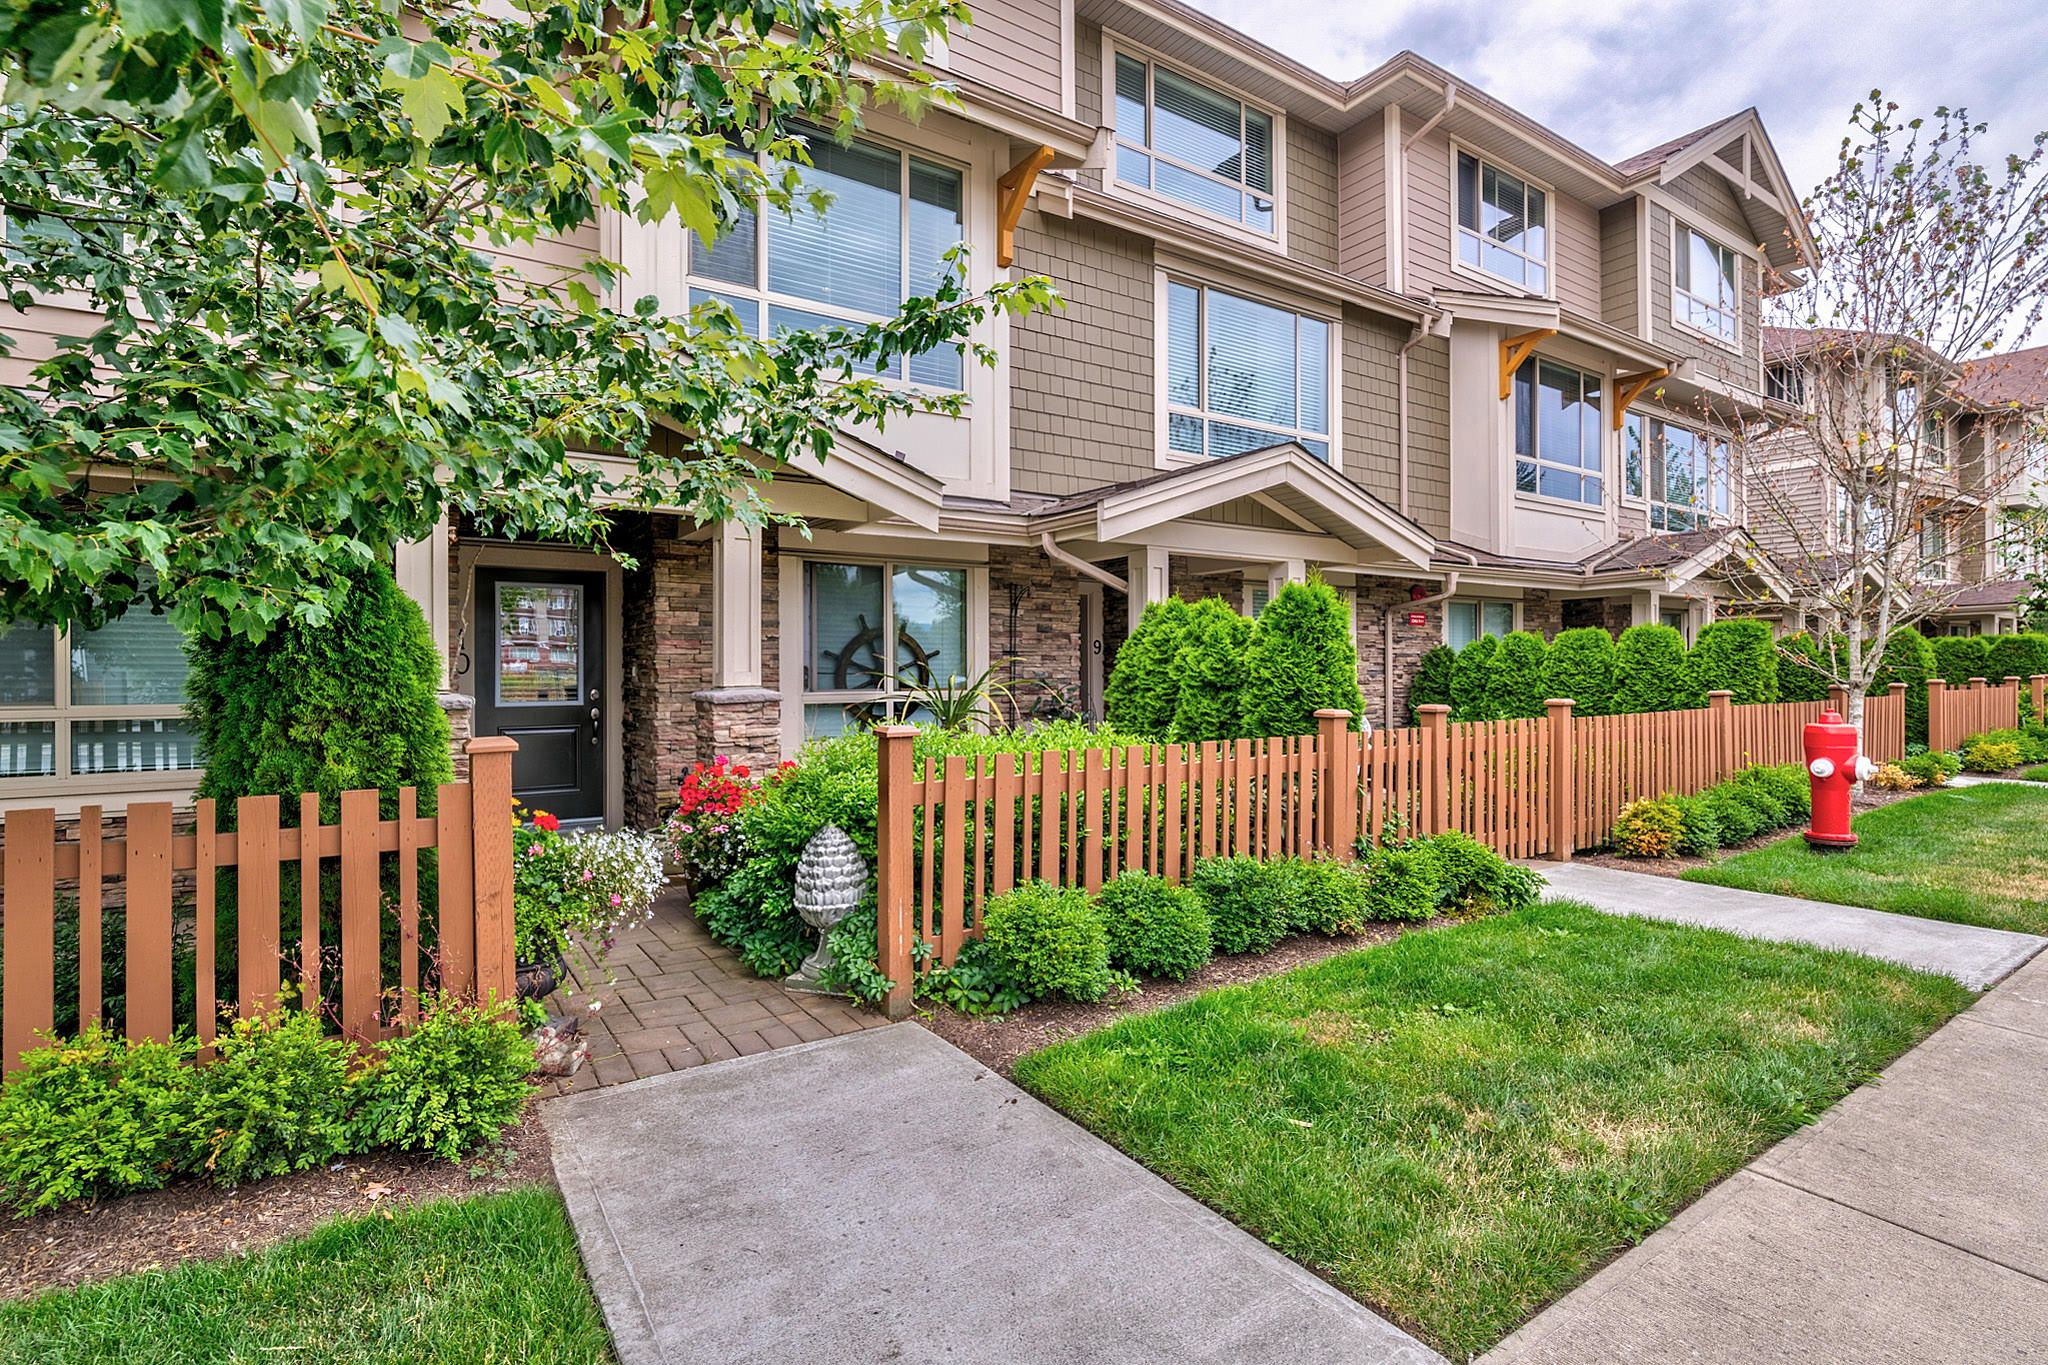 Photo 3: Photos: 10 19742 55A Street in Langley: Langley City Townhouse for sale : MLS®# R2388093